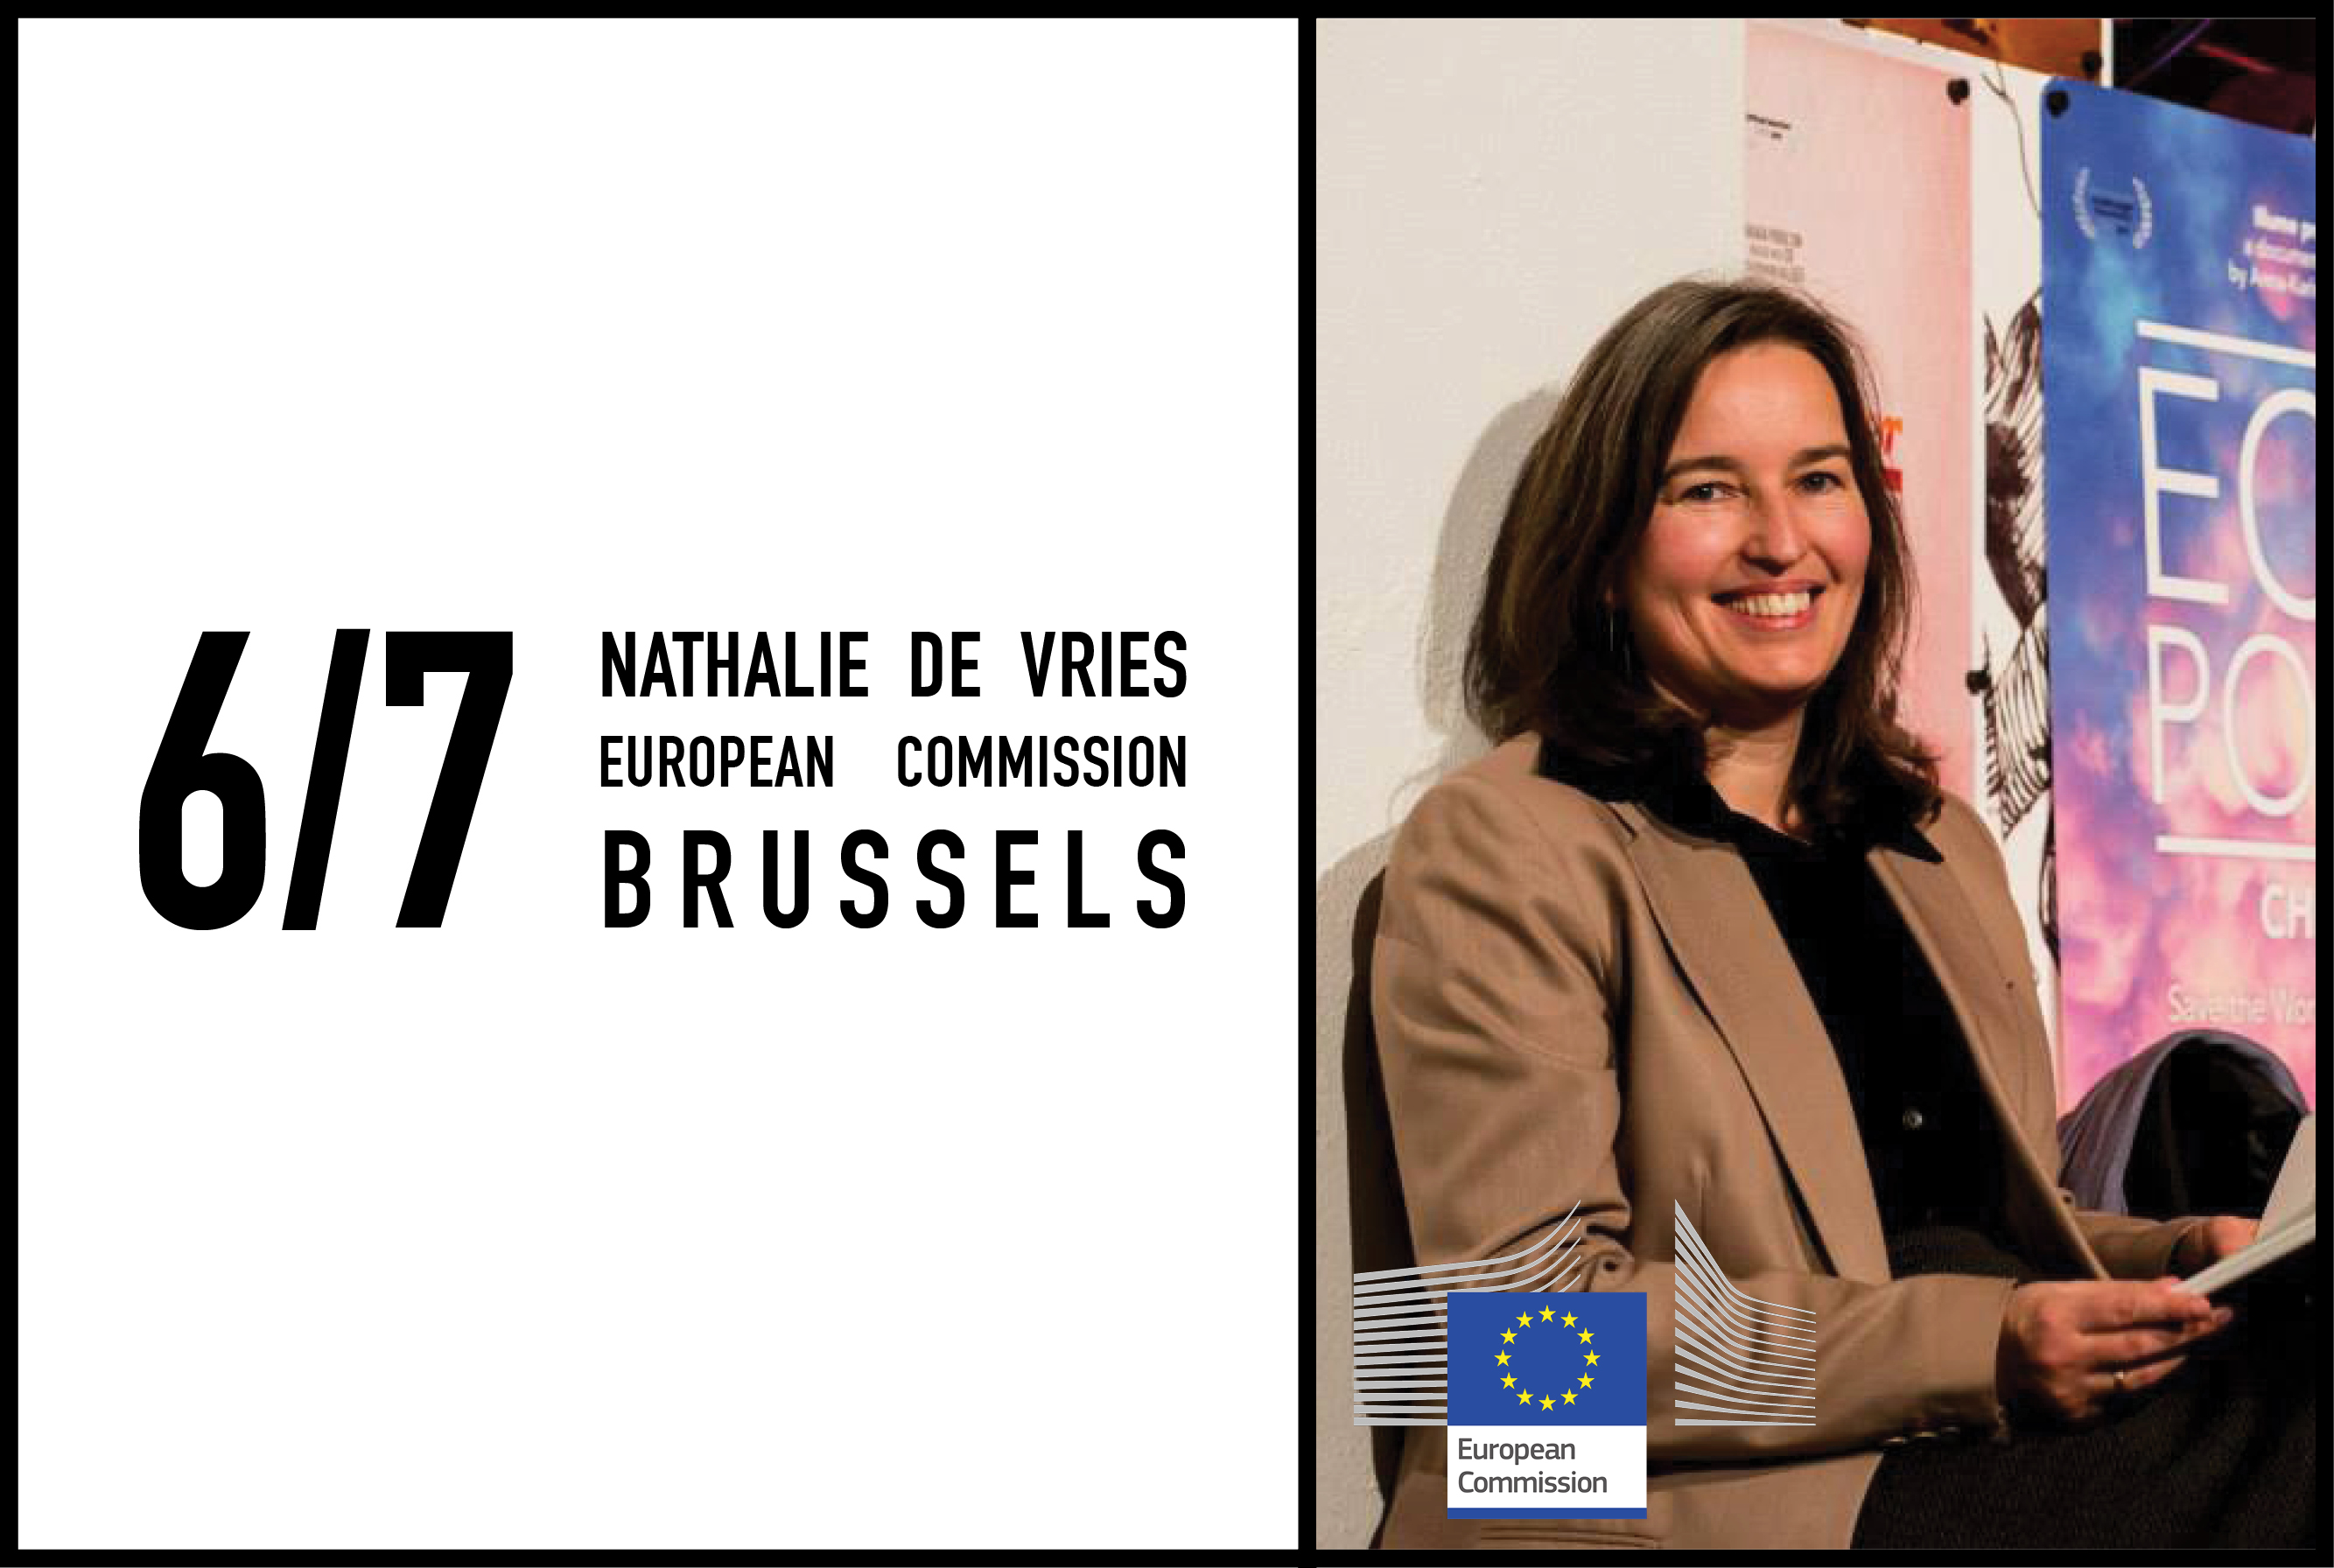 Nathalie de Vries to give lecture at European Commission symposium ''Construction: Let's build changes!'', 6 july 2017